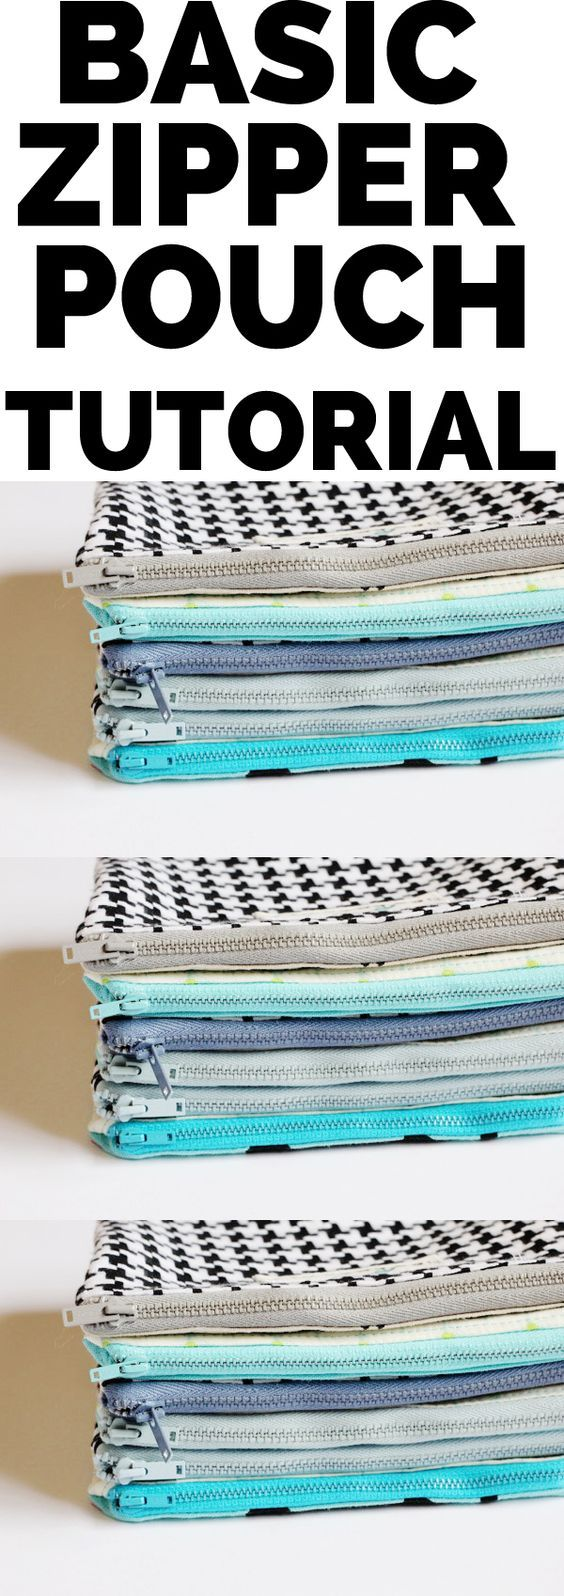 Basic zipper pouch tutorial   Free sewing tutorials   Easy sewing projects   Zipper installation   Handmade accessories   Homemade gift ideas   Beginner sewing project